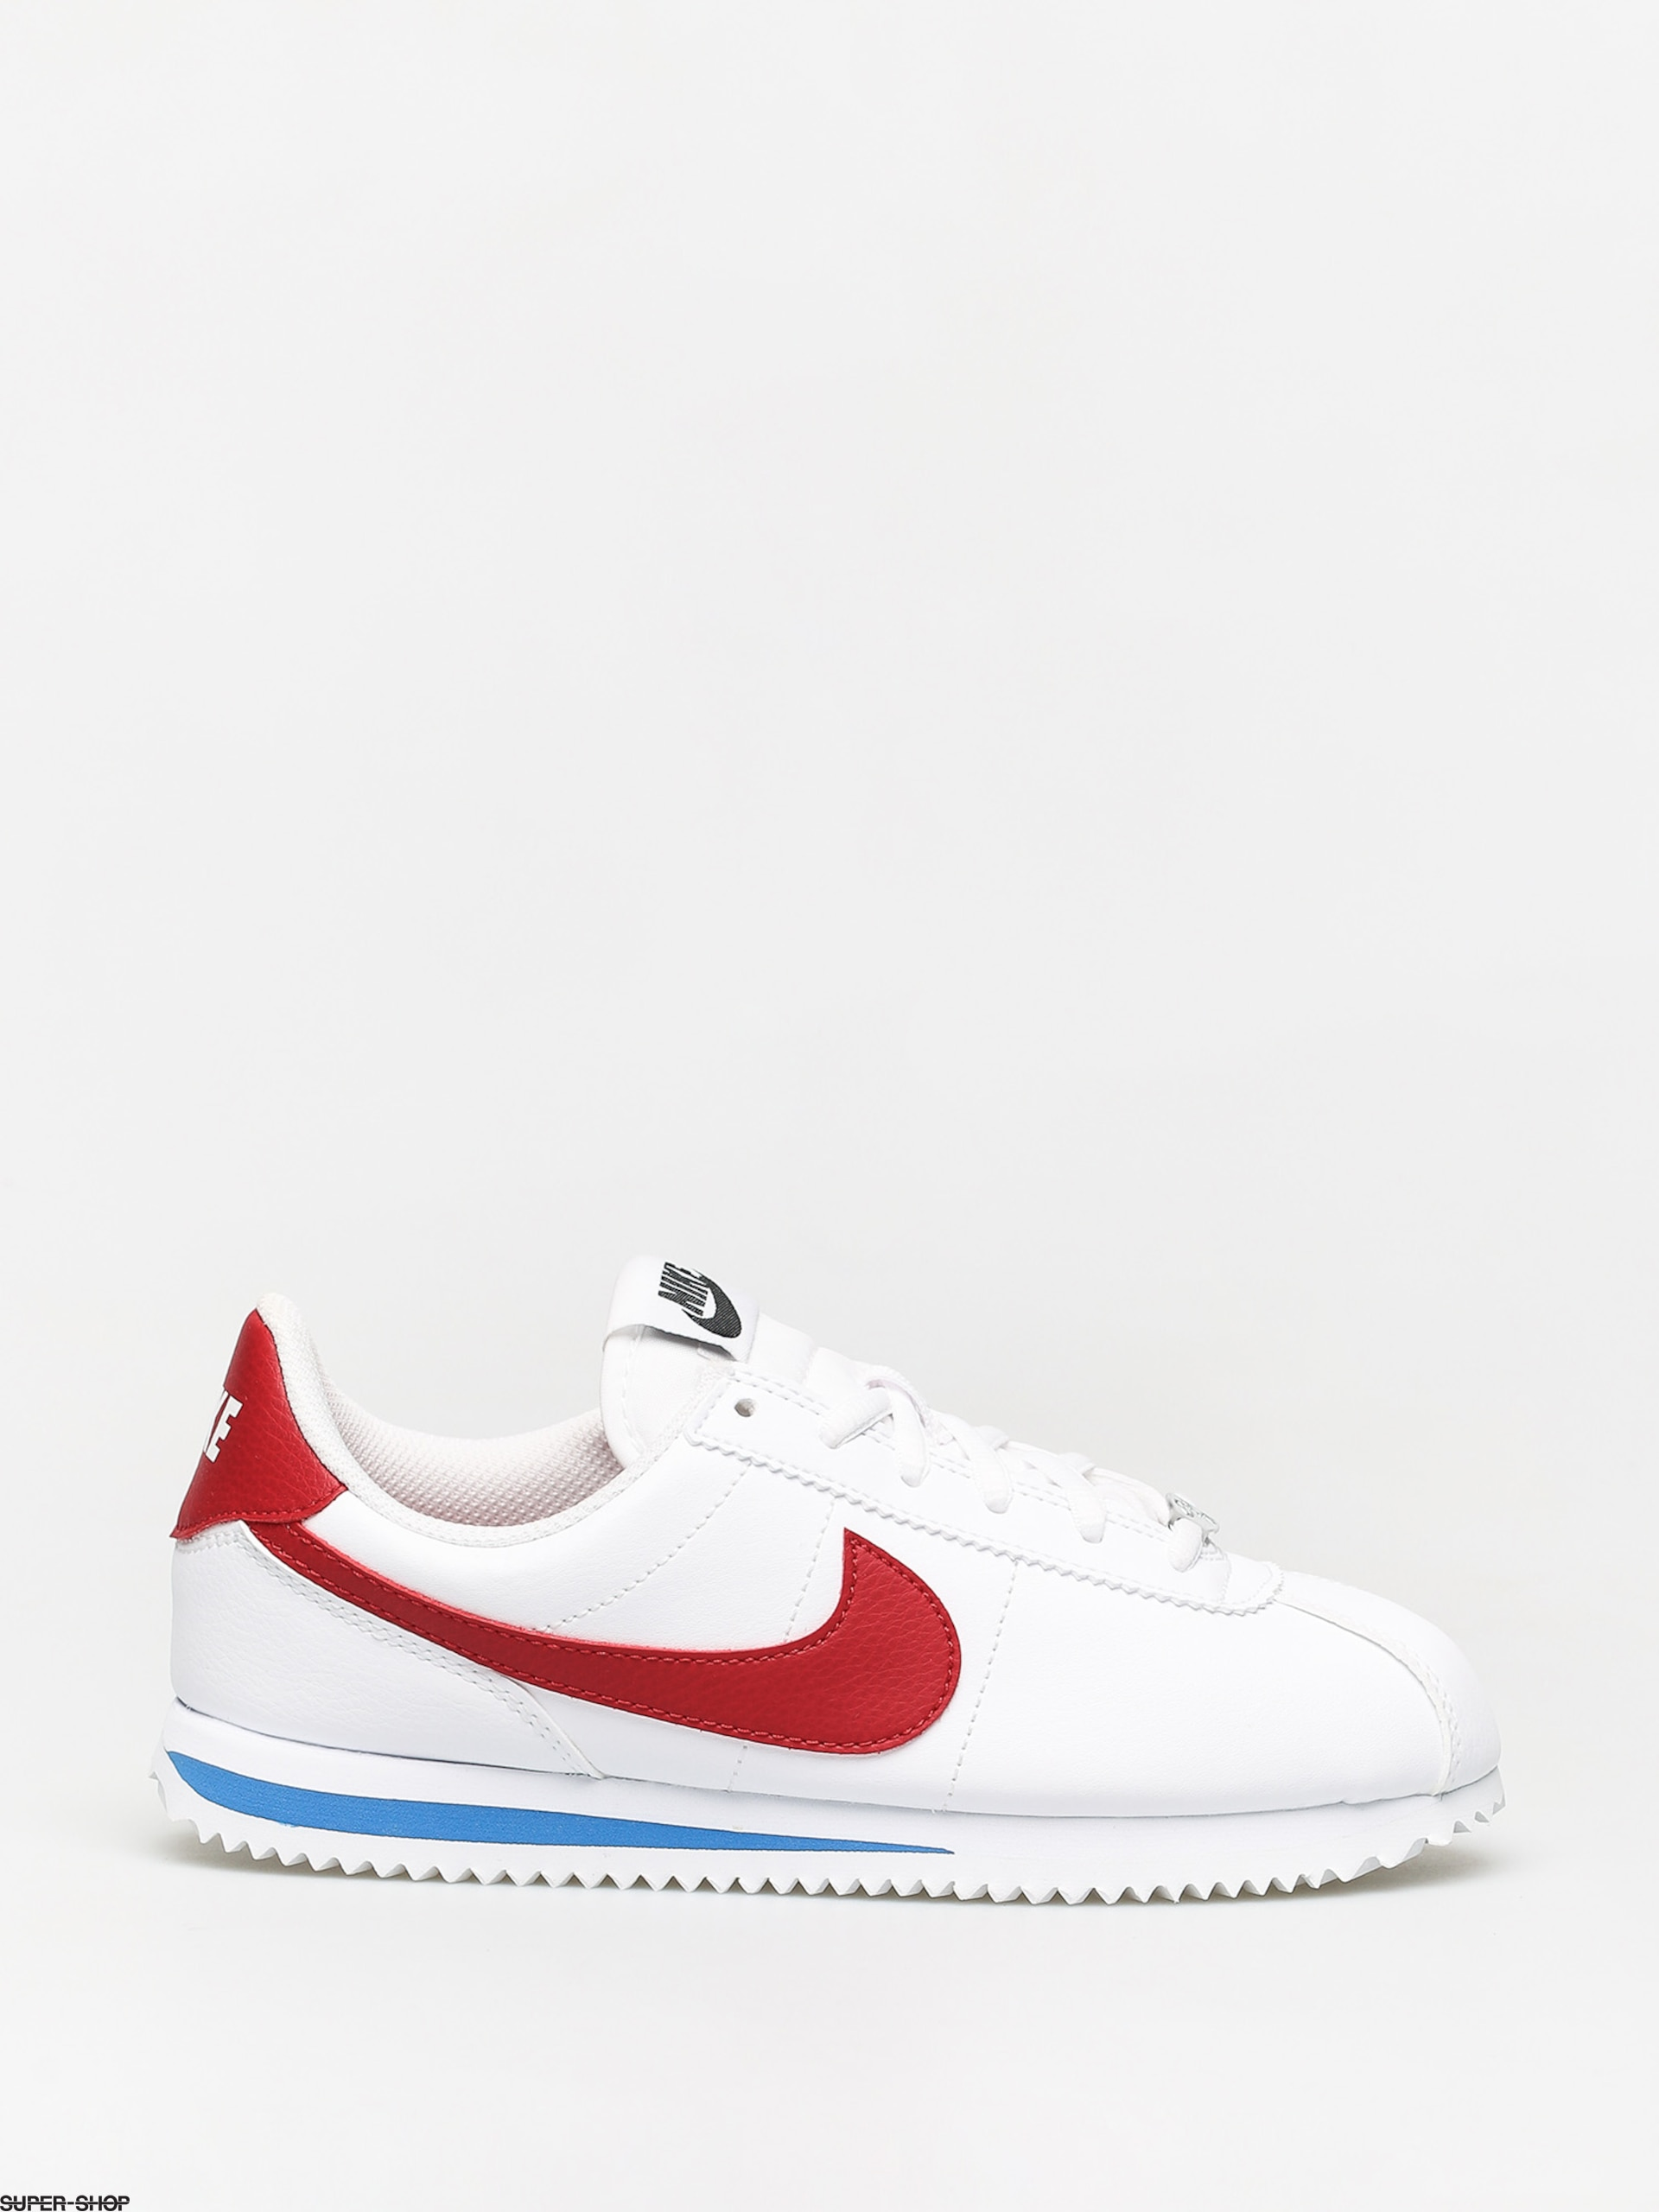 Ofensa Funcionar Reproducir  Nike Cortez Basic Sl Gs Shoes (white/varsity red varsity royal black)